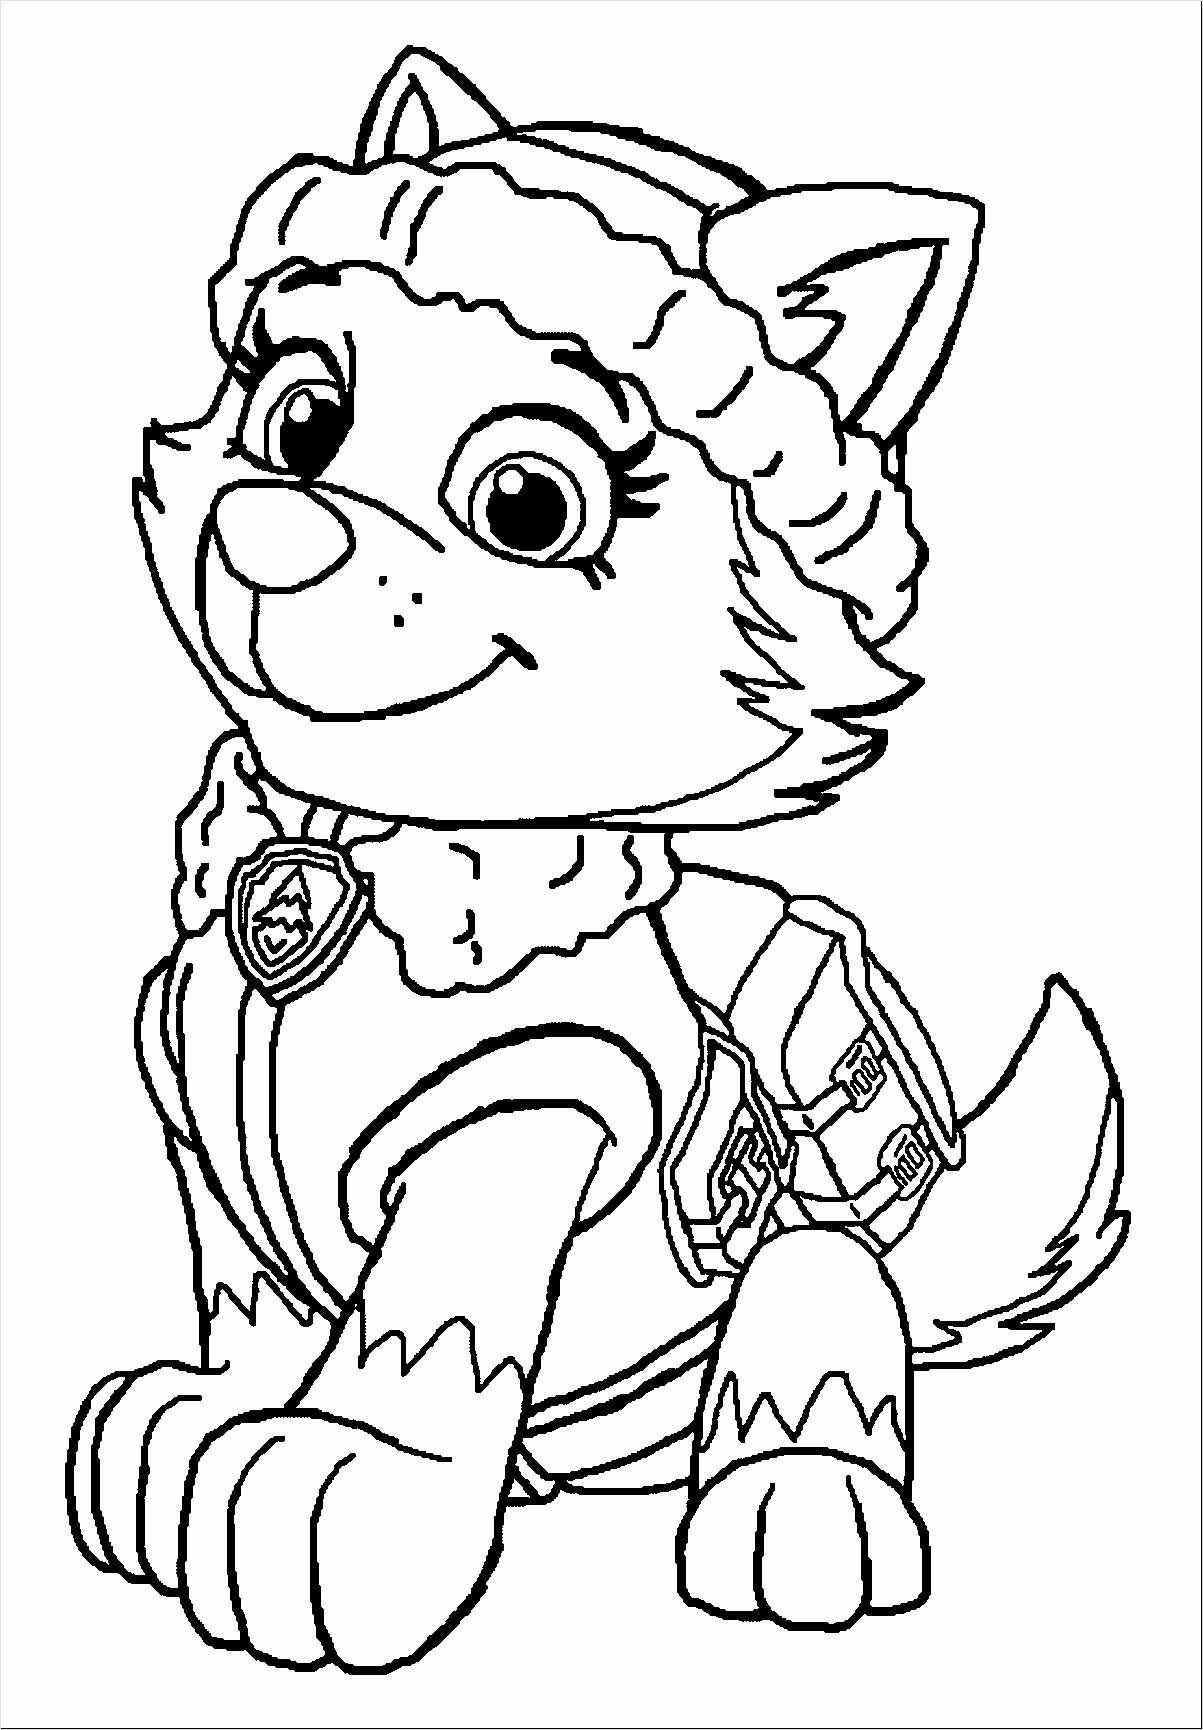 paw patrol lookout coloring page paw patrol lookout tower coloring book page free coloring patrol lookout page paw